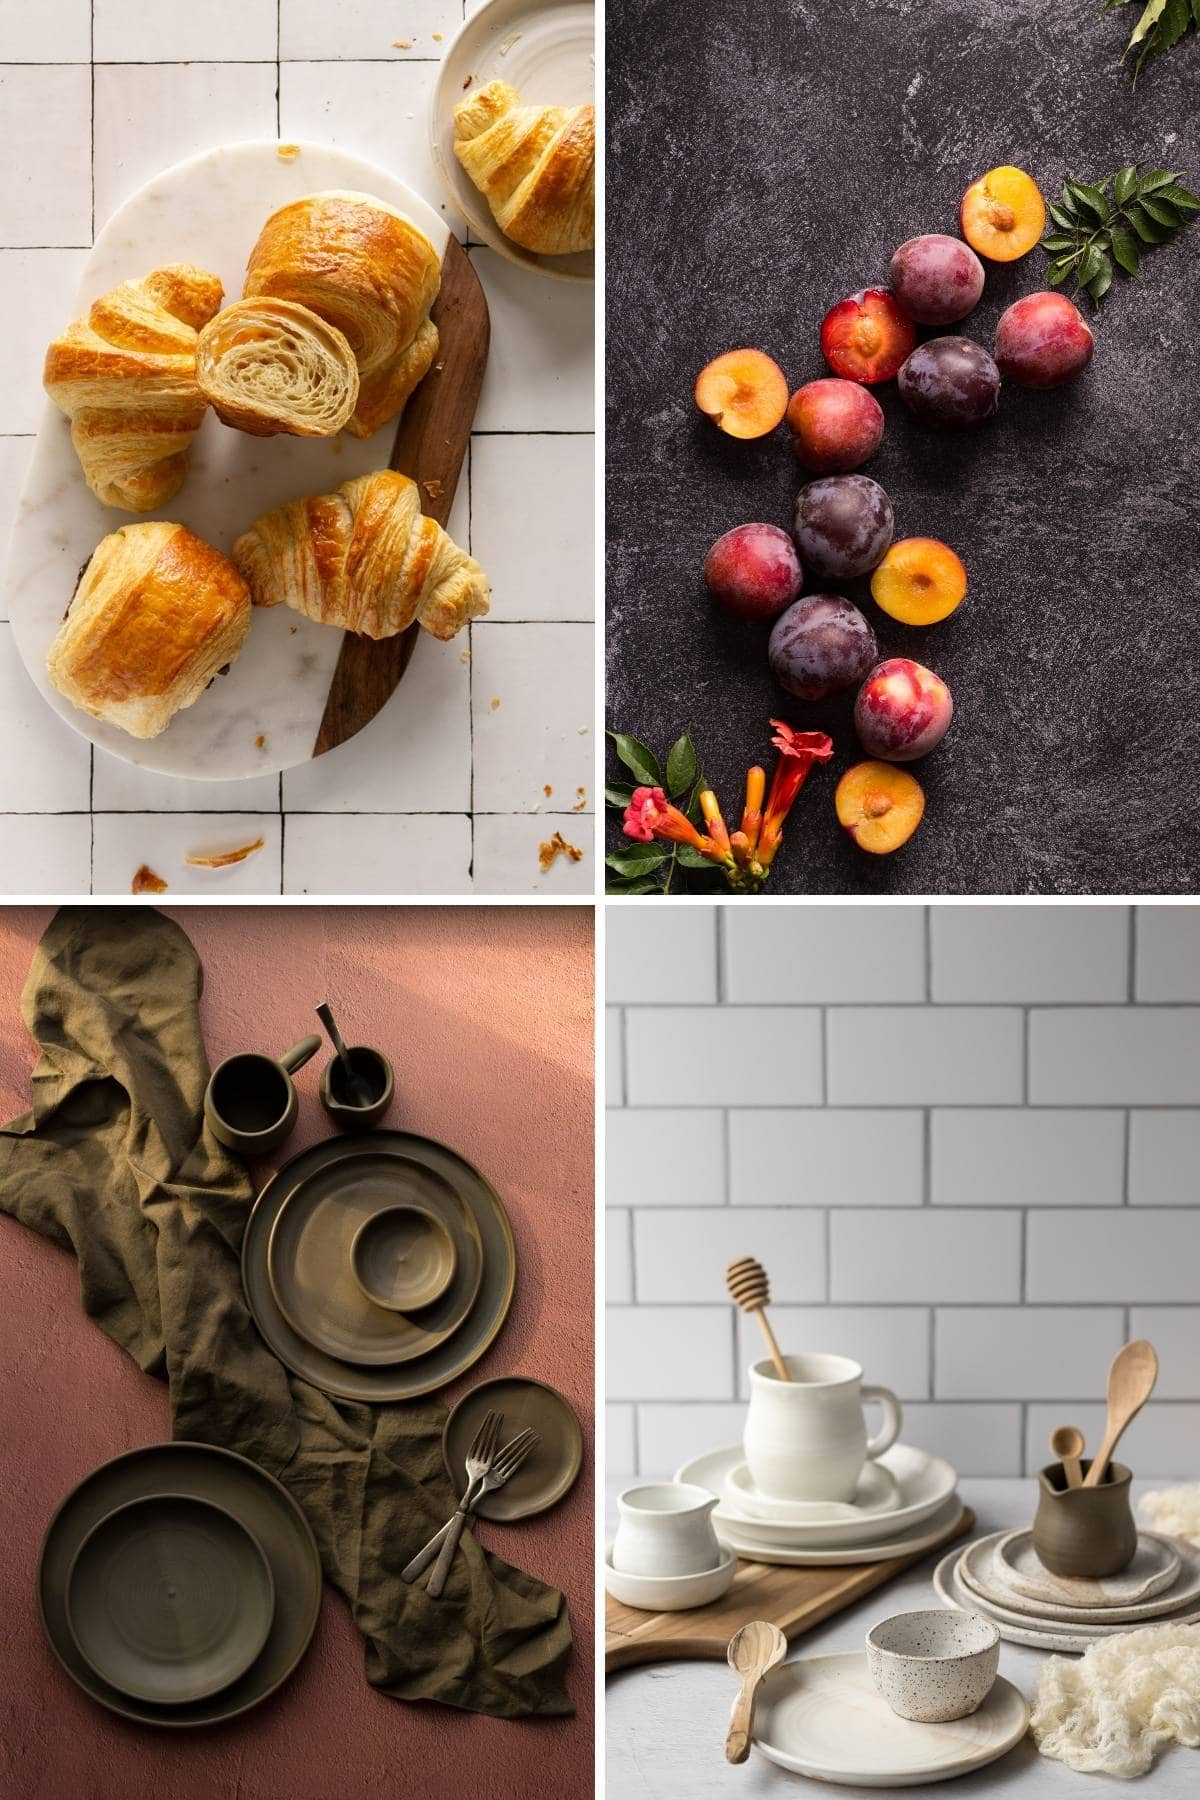 A photo grid of croissants, plums, and pottery